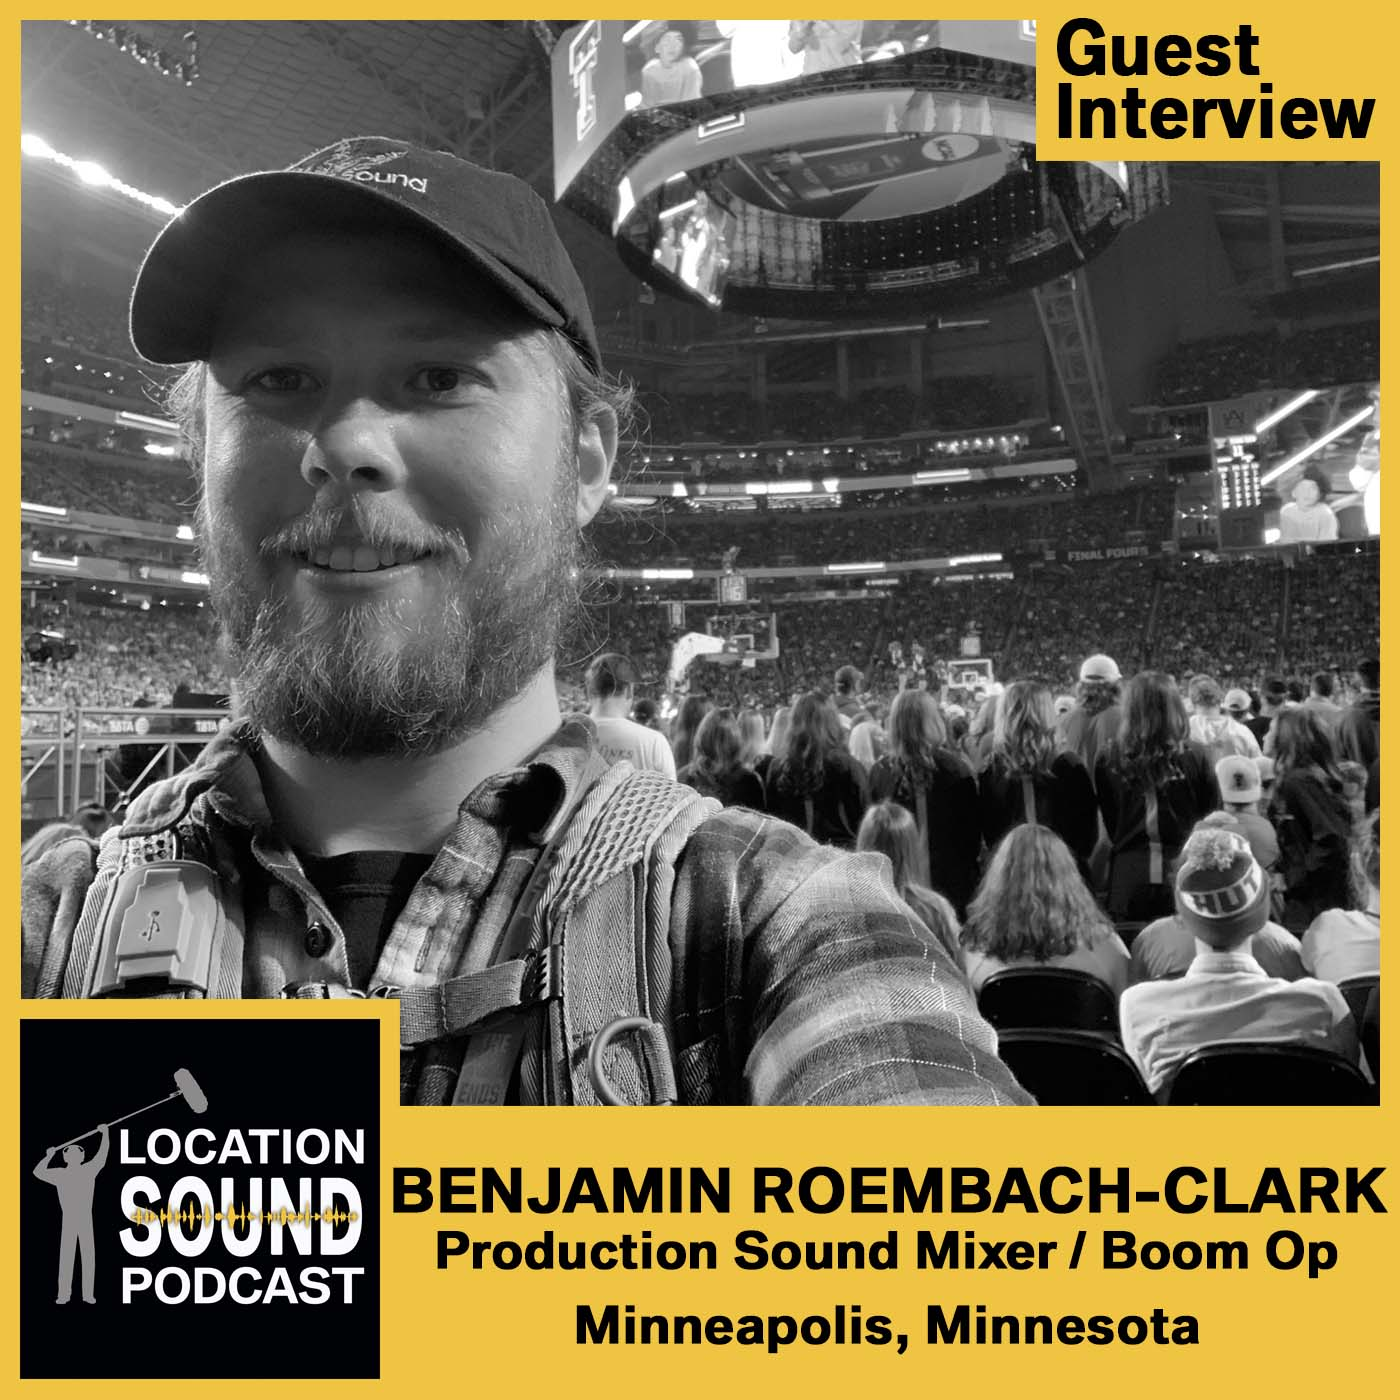 079 Benjamin Roembach-Clark - Production Sound Mixer based out of Minneapolis, Minnesota